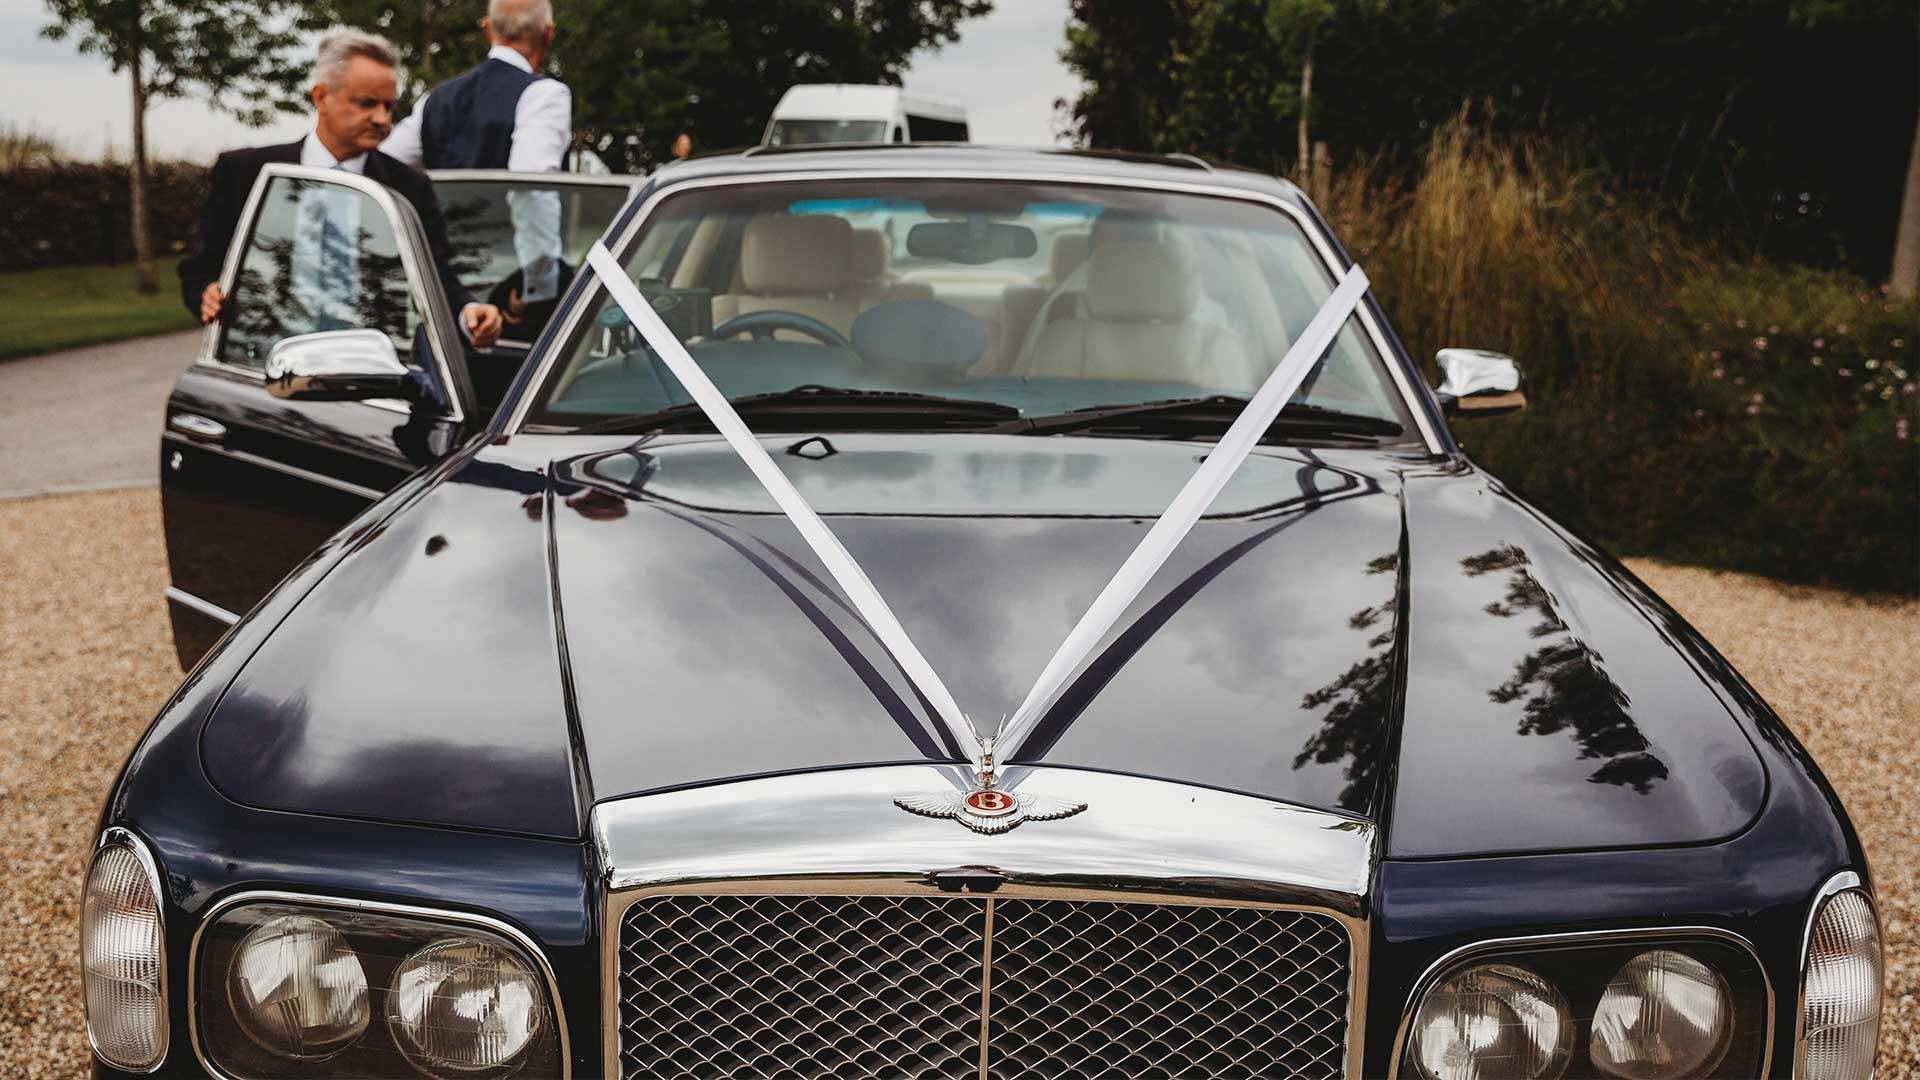 Azure's Bentley Arnage wedding car in Blue